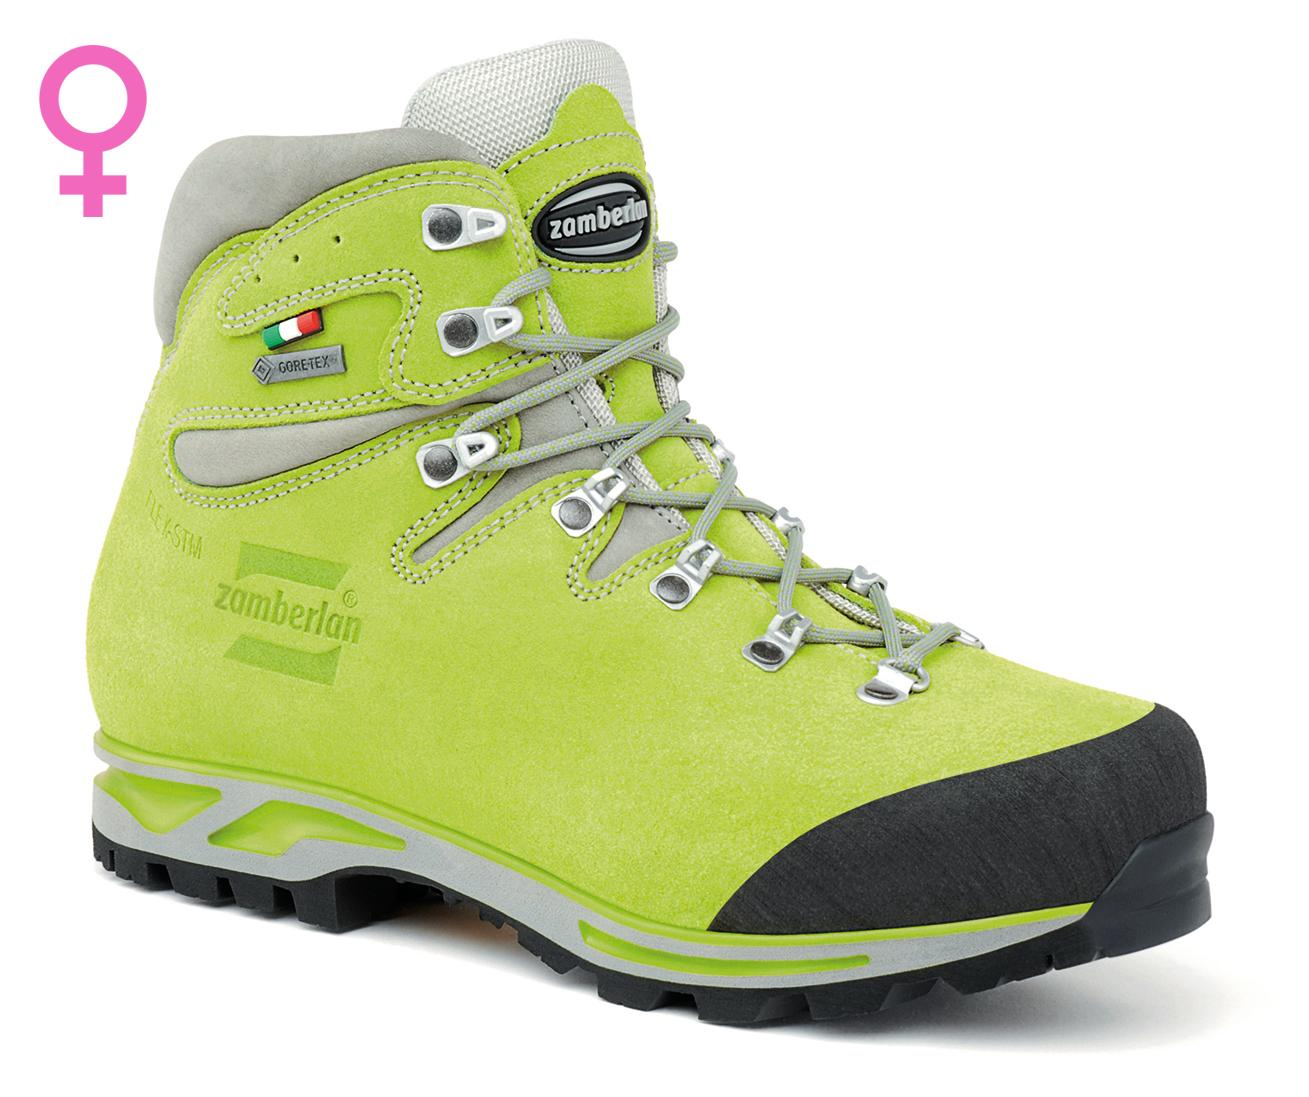 900 ROLLE GTX WNS   -   Scarponi  Hiking   -   Acid Green/Grey